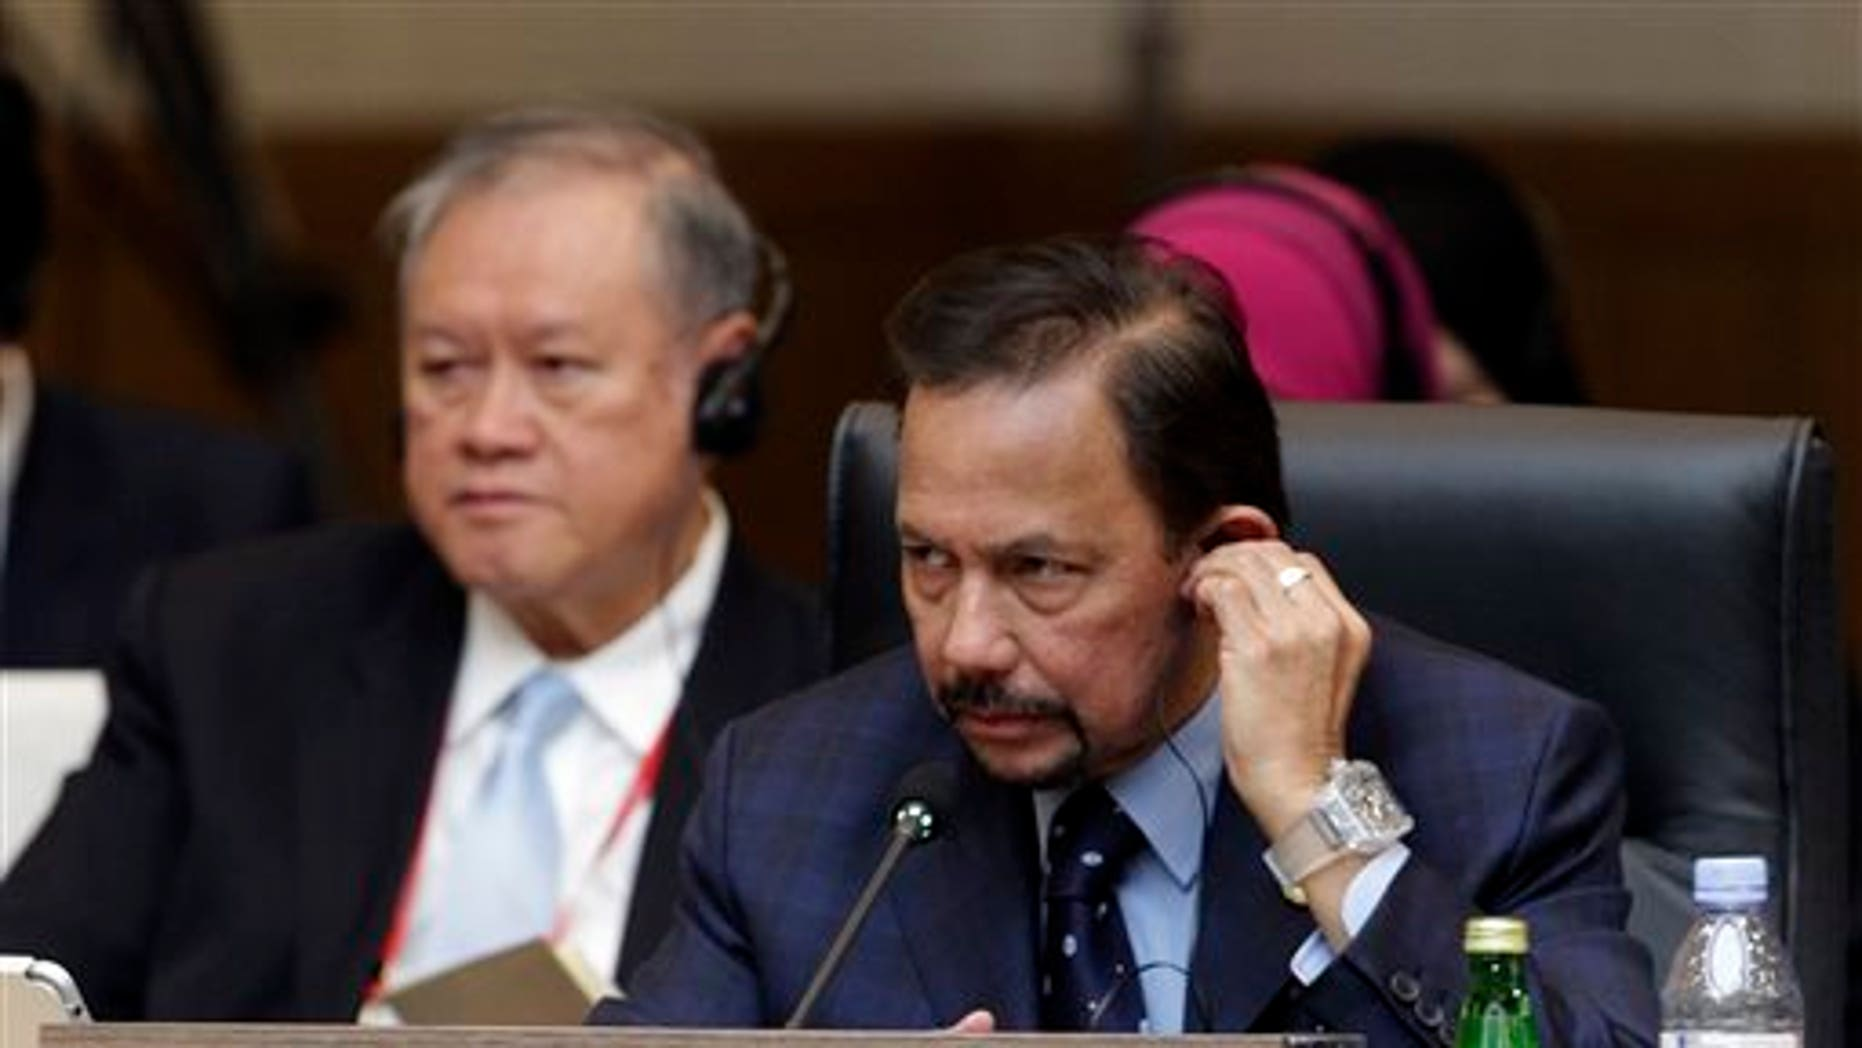 Brunei Sultan Hassanal Bolkiah attends the formal session of the ASEAN-Republic of Korea Commemorative Summit in Busan, South Korea, Friday, Dec. 12, 2014. (AP Photo/Ahn Young-joon, Pool)